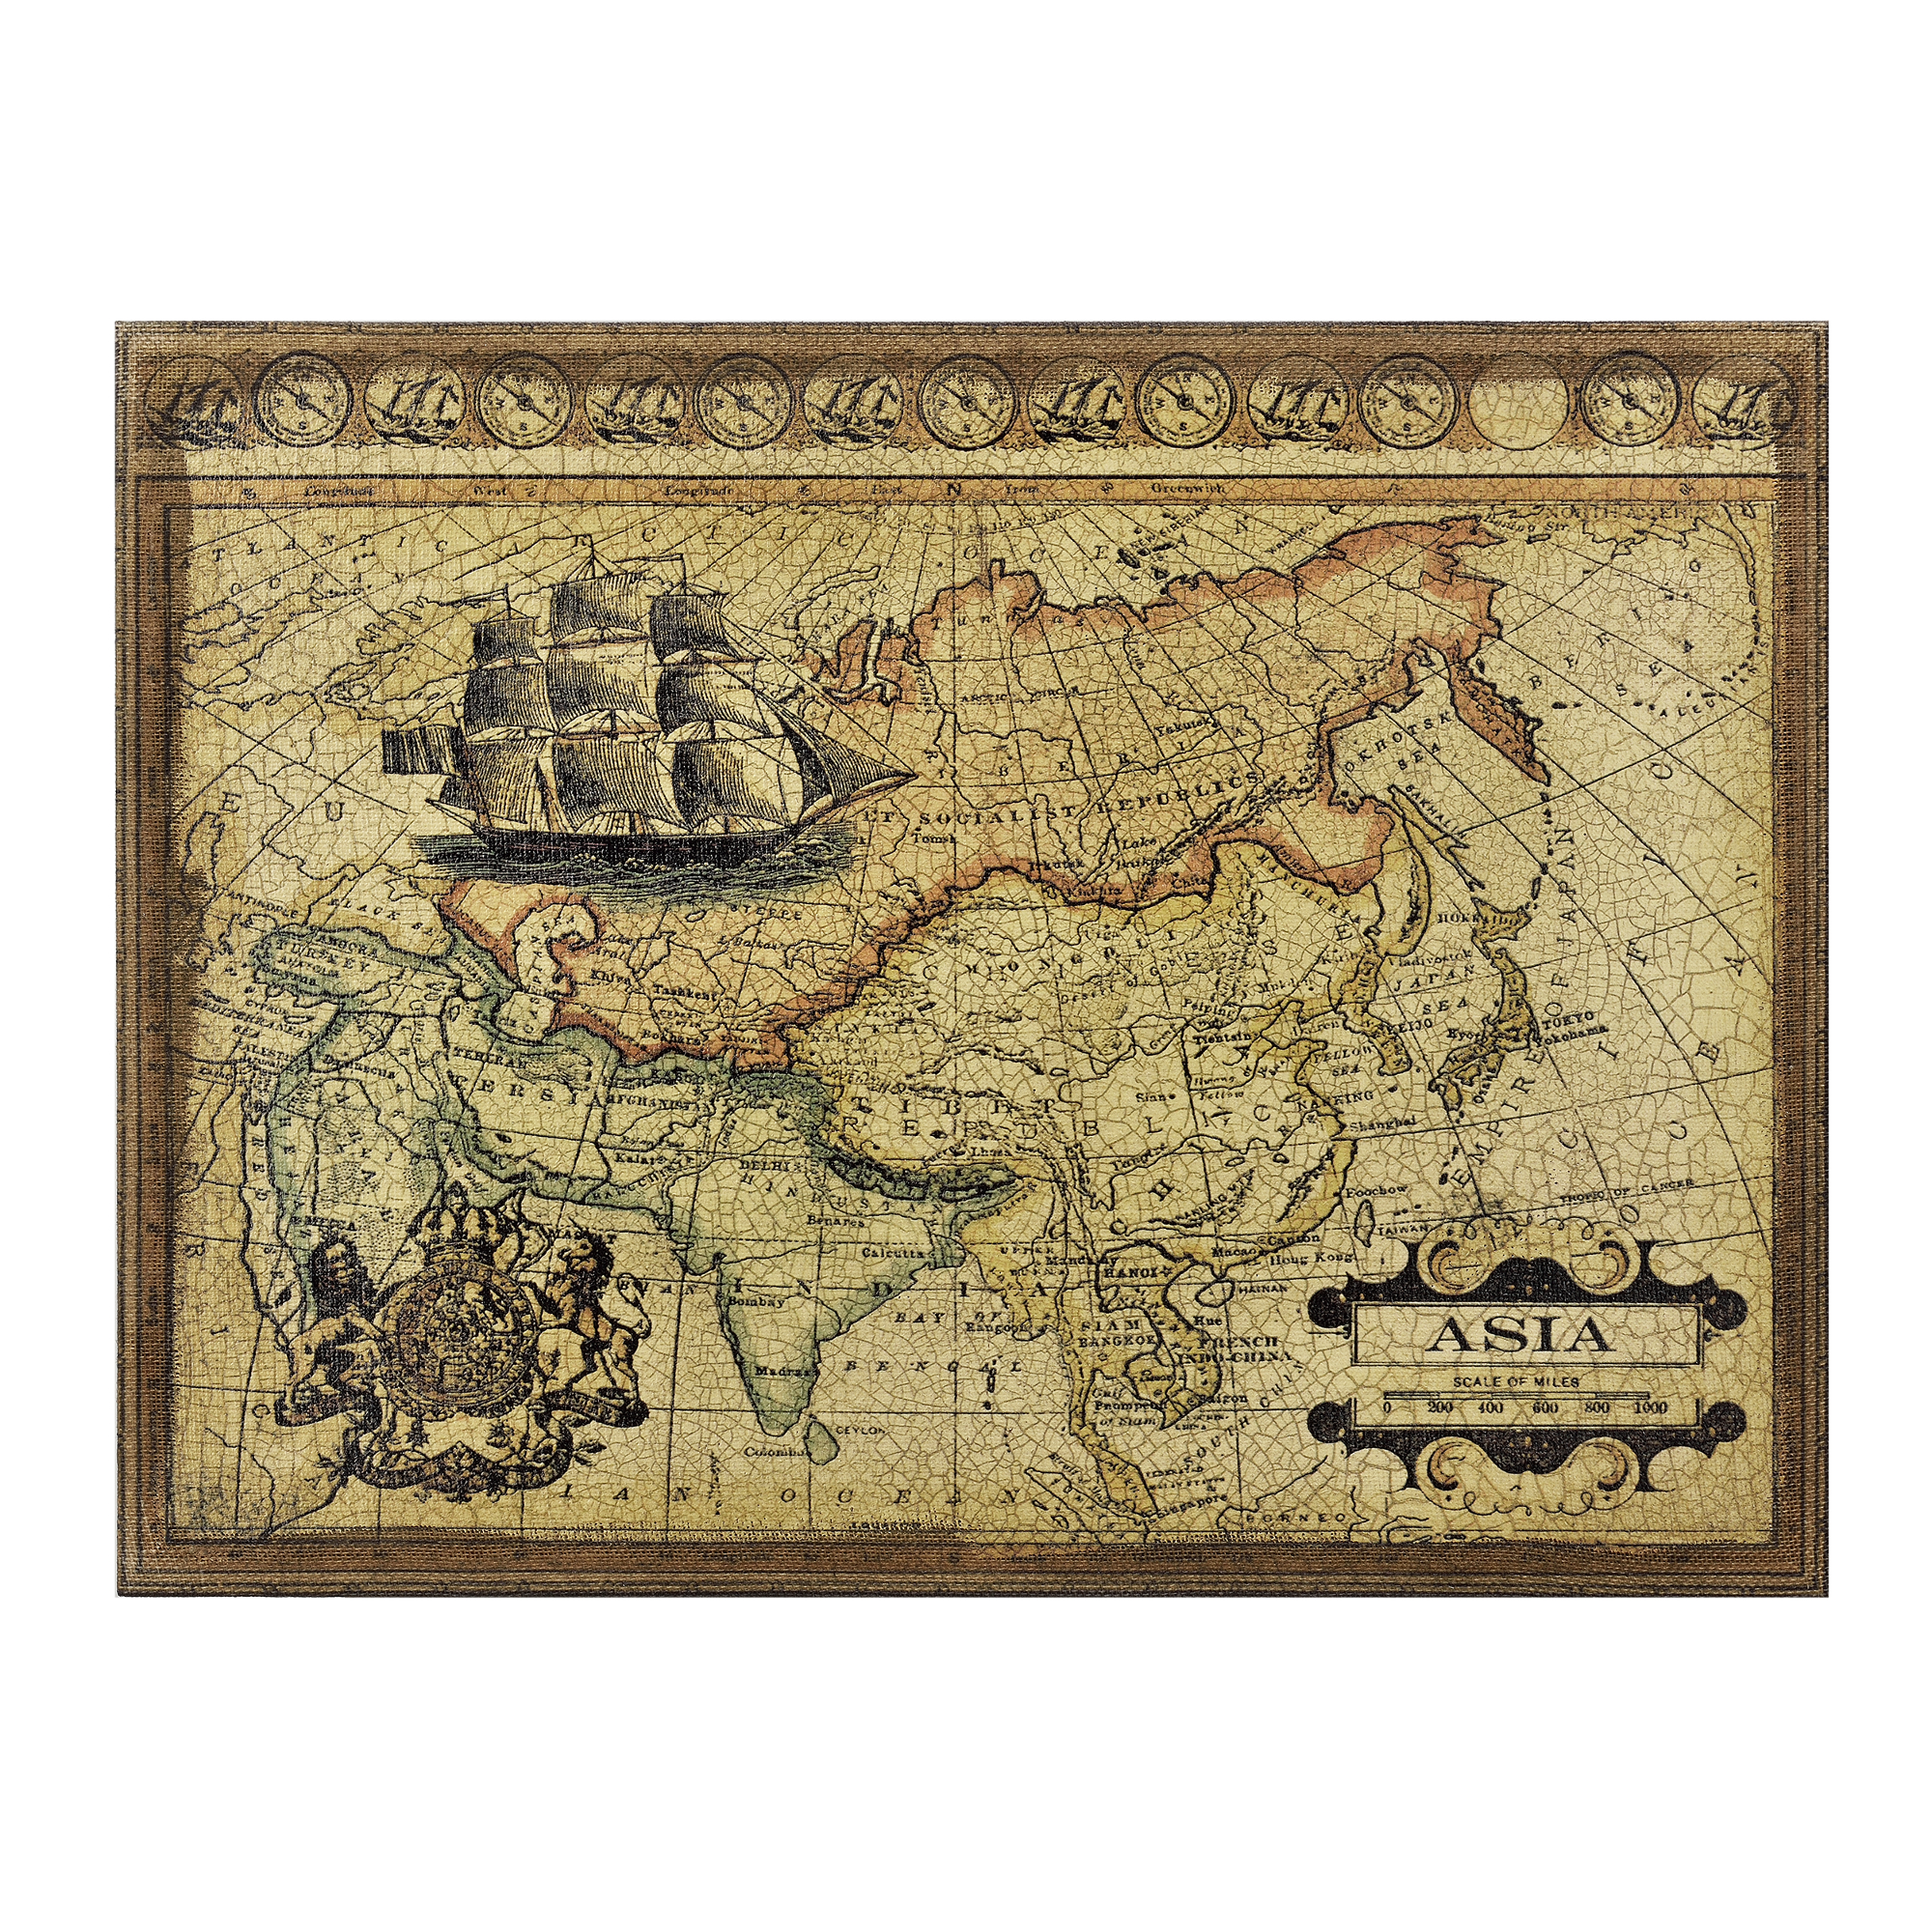 peinture murale 80x60cm toile atlas carte asie image mappemonde ebay. Black Bedroom Furniture Sets. Home Design Ideas